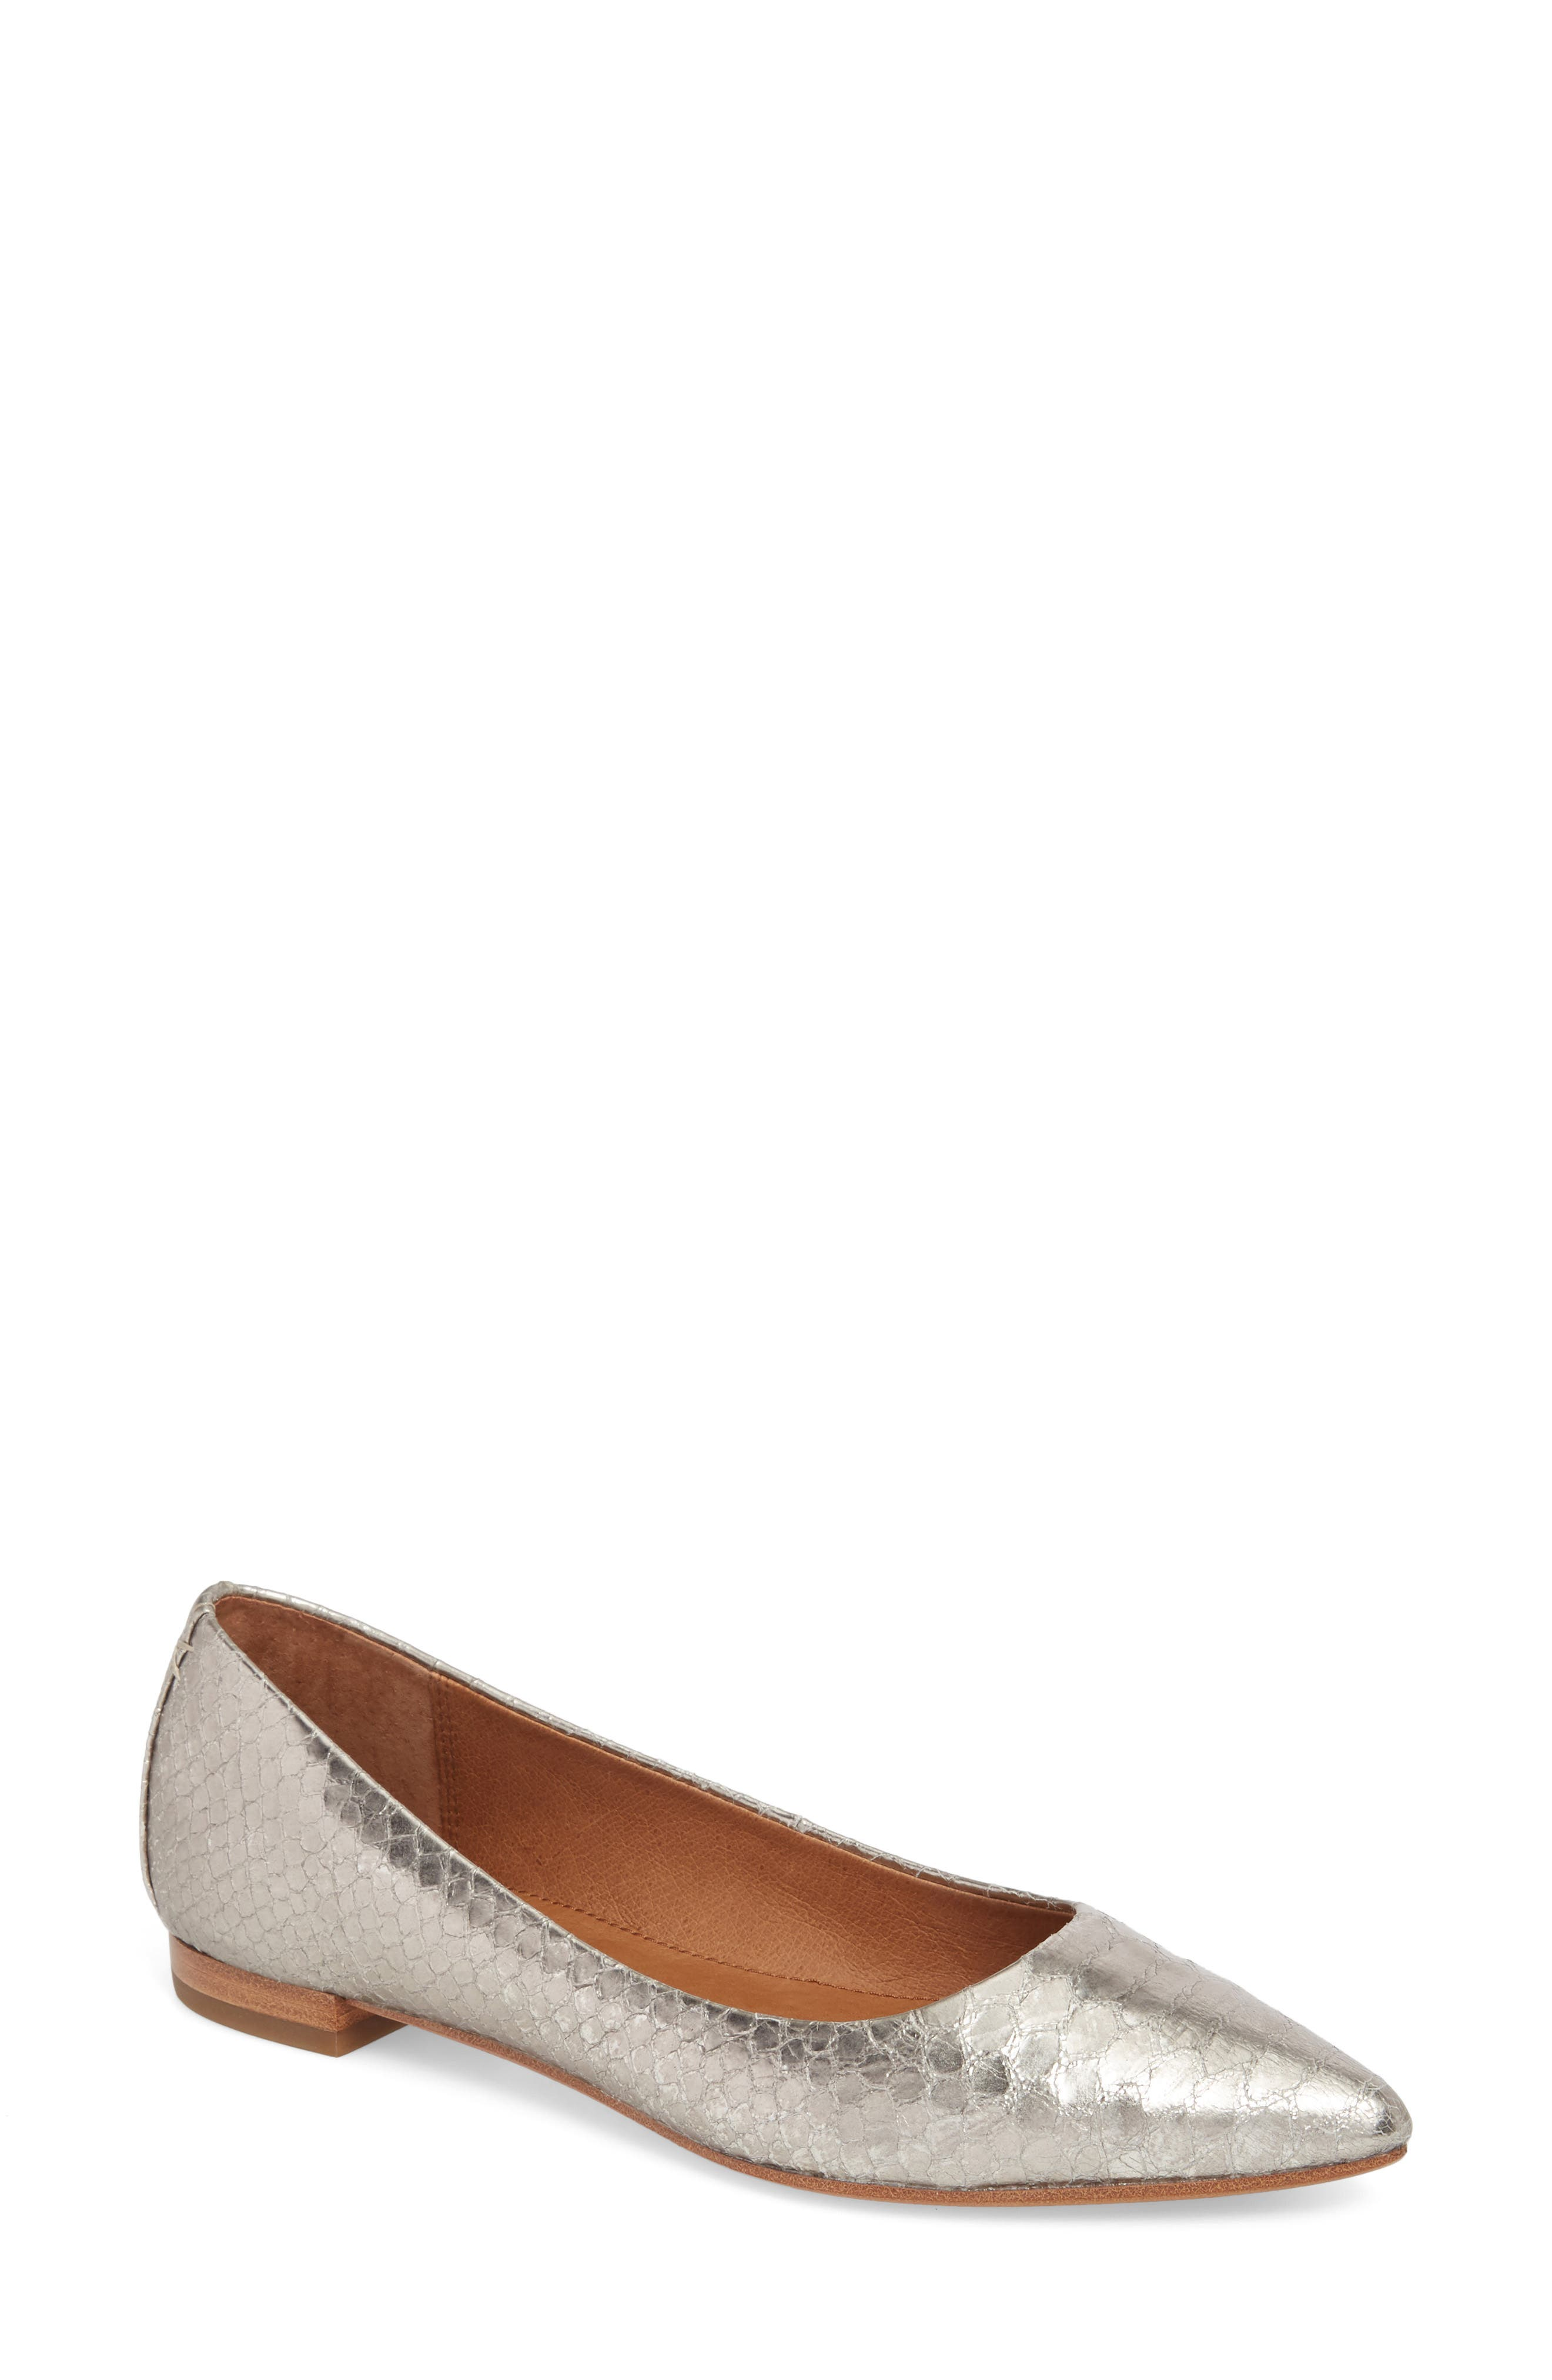 Sienna Pointy Toe Ballet Flat,                         Main,                         color,